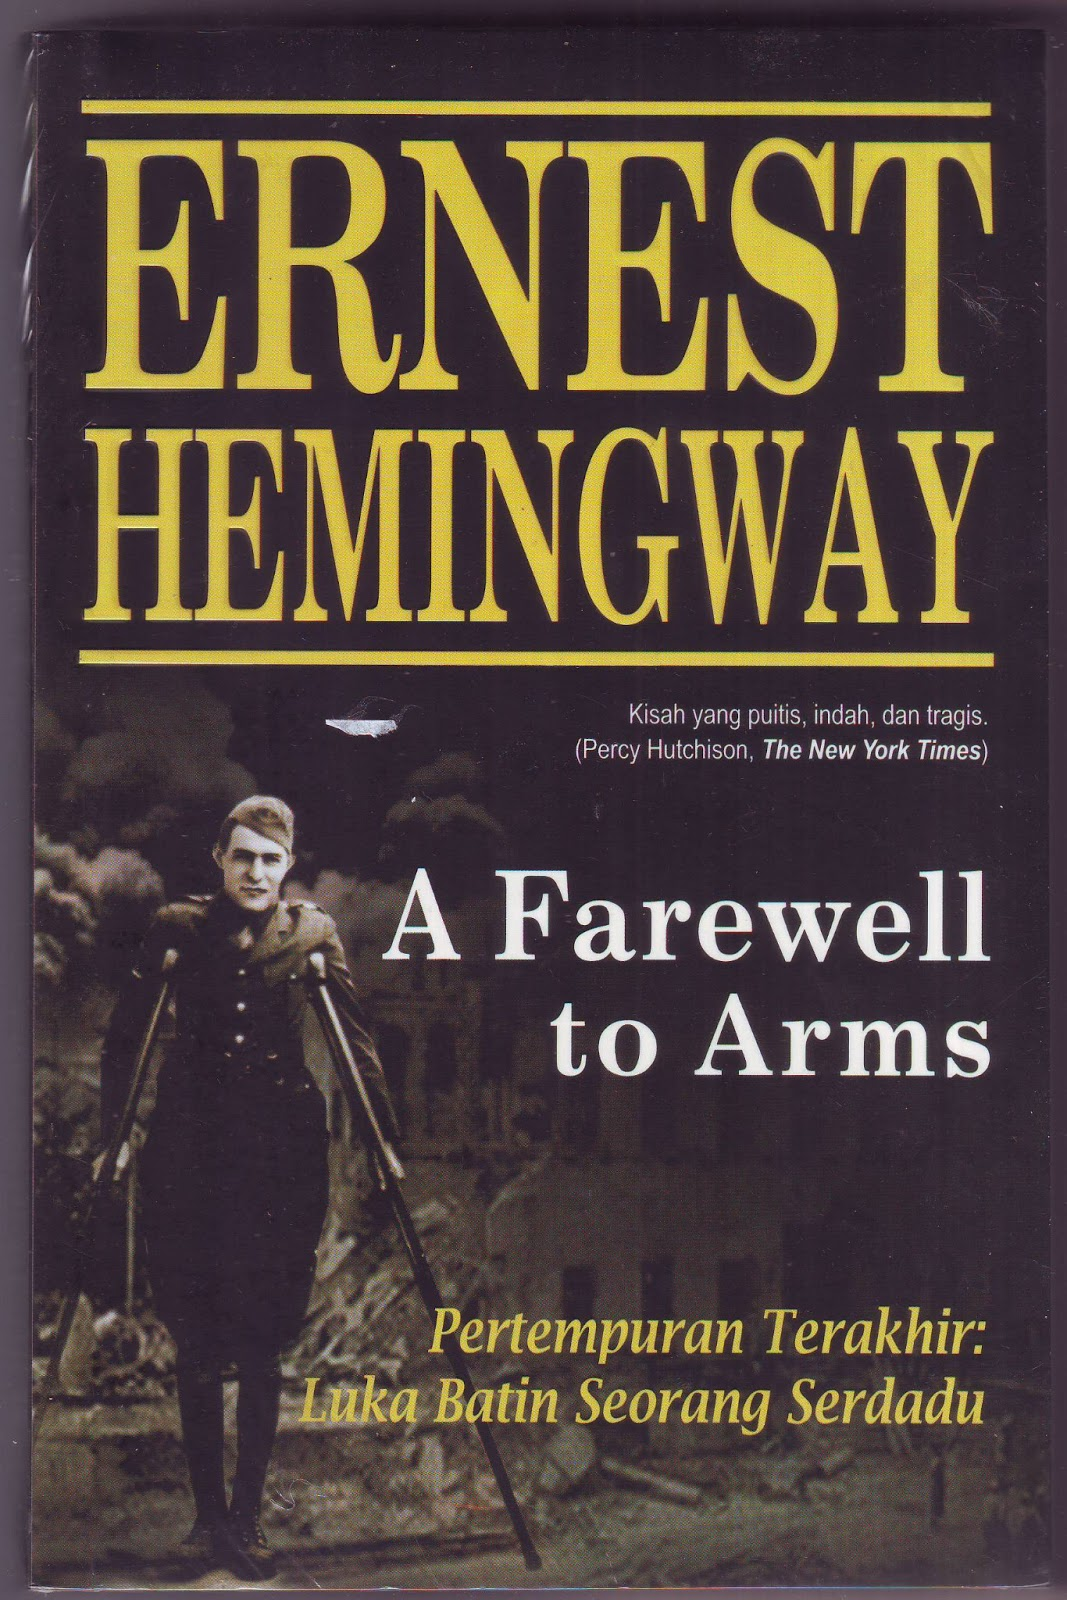 a farewell to arms thesis A farewell to arms by ernest hemingway: a 3 point thesis on hemingway's characters' attitudes towards war, includes quotes.